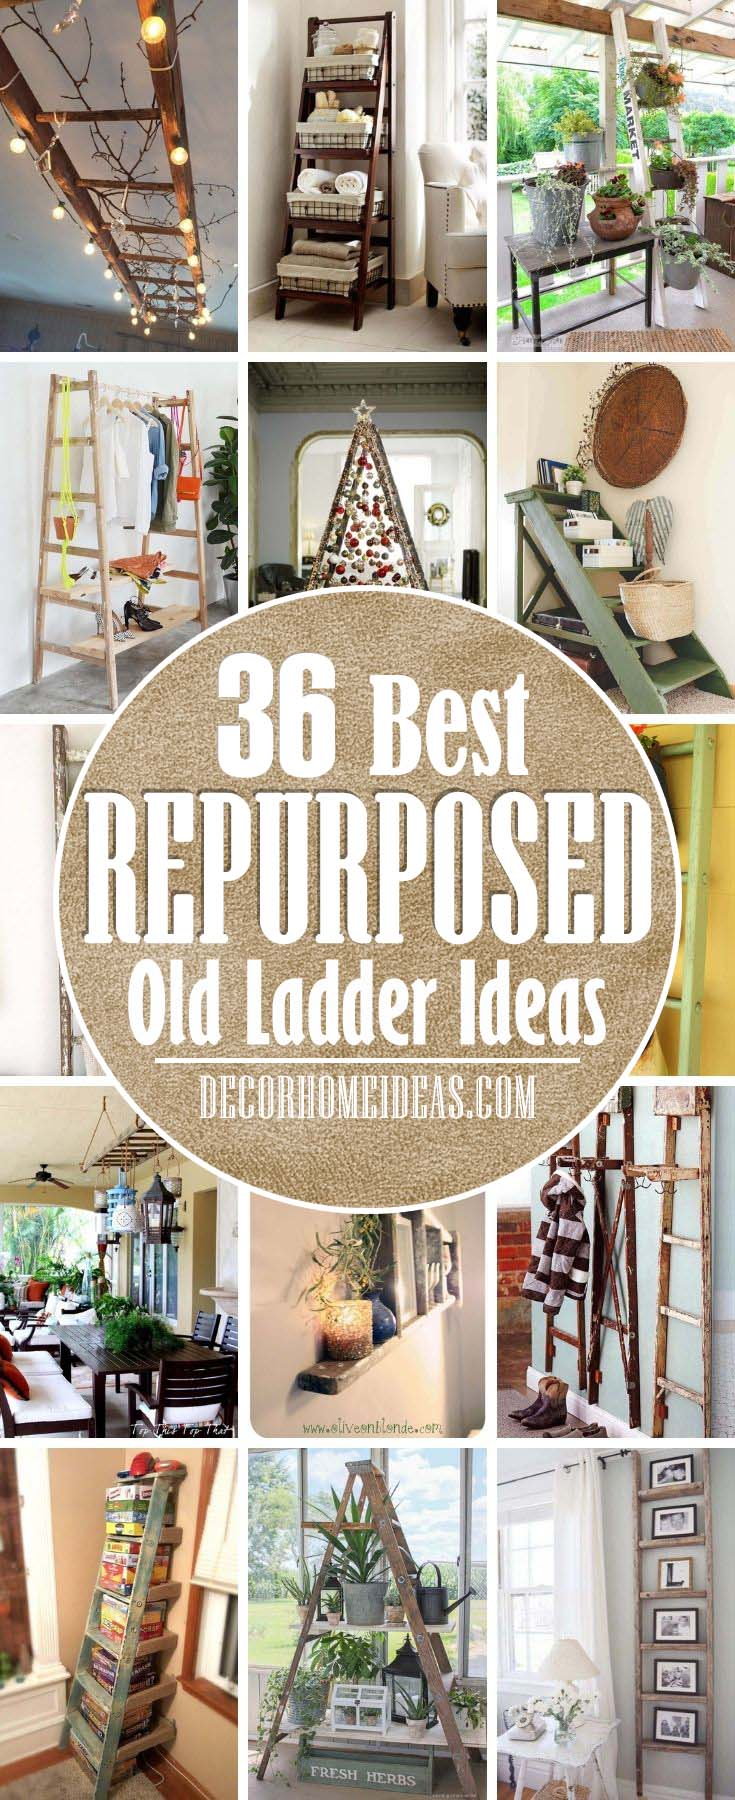 Best Repurposed Old Ladder Ideas. I'm pretty sure that all of you have some old unused ladders that we can repurpose as some new items and here are some brilliant ideas and DIY tutorials. #decorhomeideas